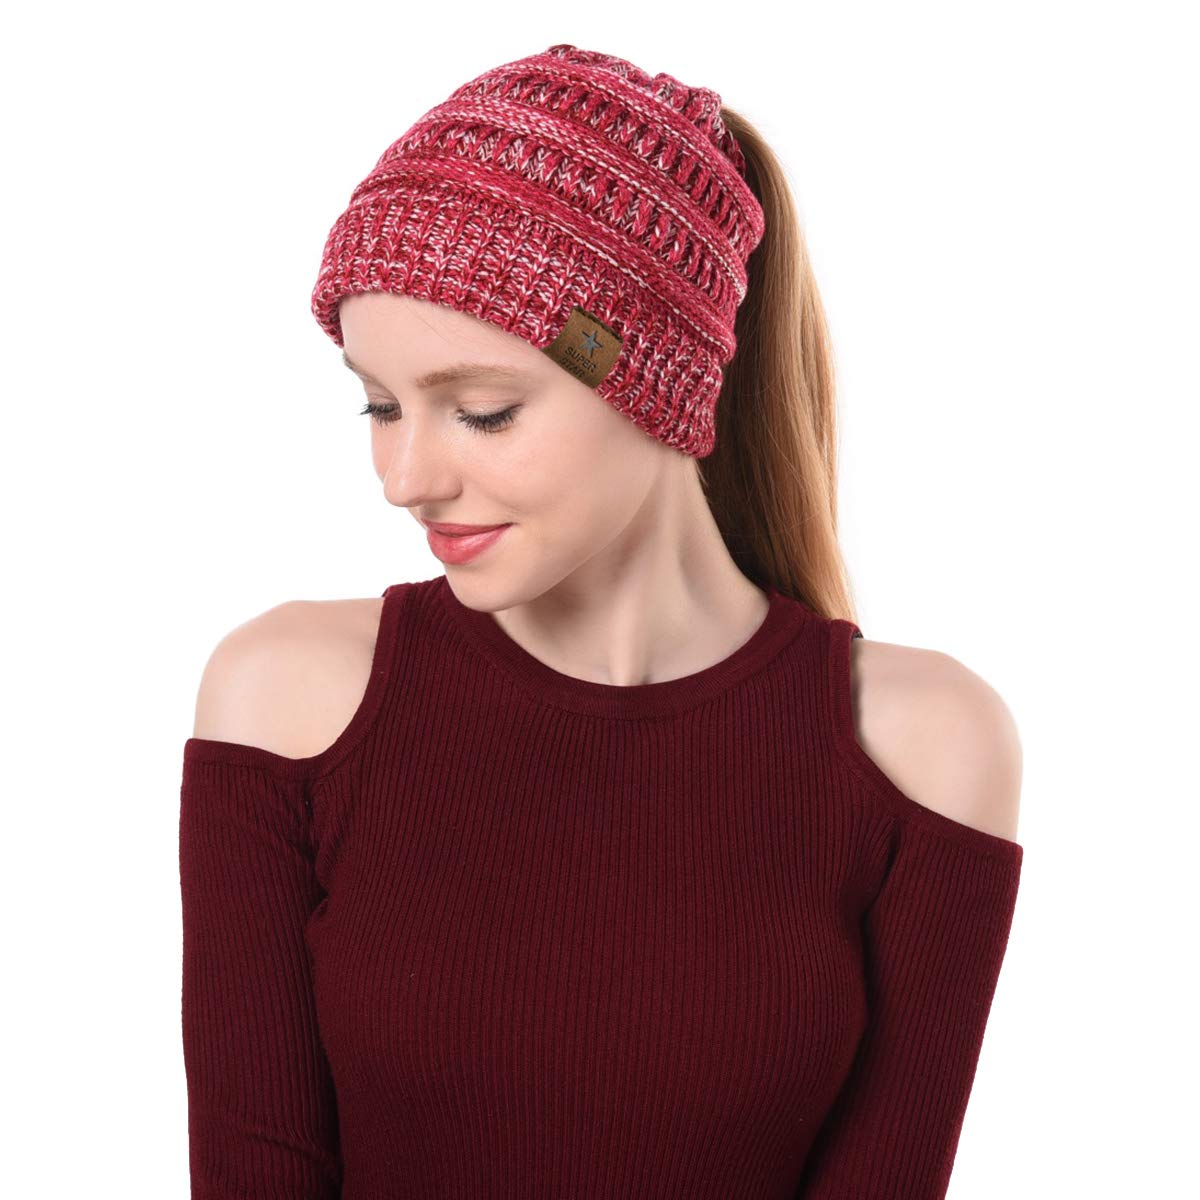 Zando Women s Soft Stretch Chunky Cable Knit Winter Warm Cap Messy  BeanieTail High Bun Ponytail Slouchy Beanie Hat 1 Pack Rose Red White 3f37fe95b145